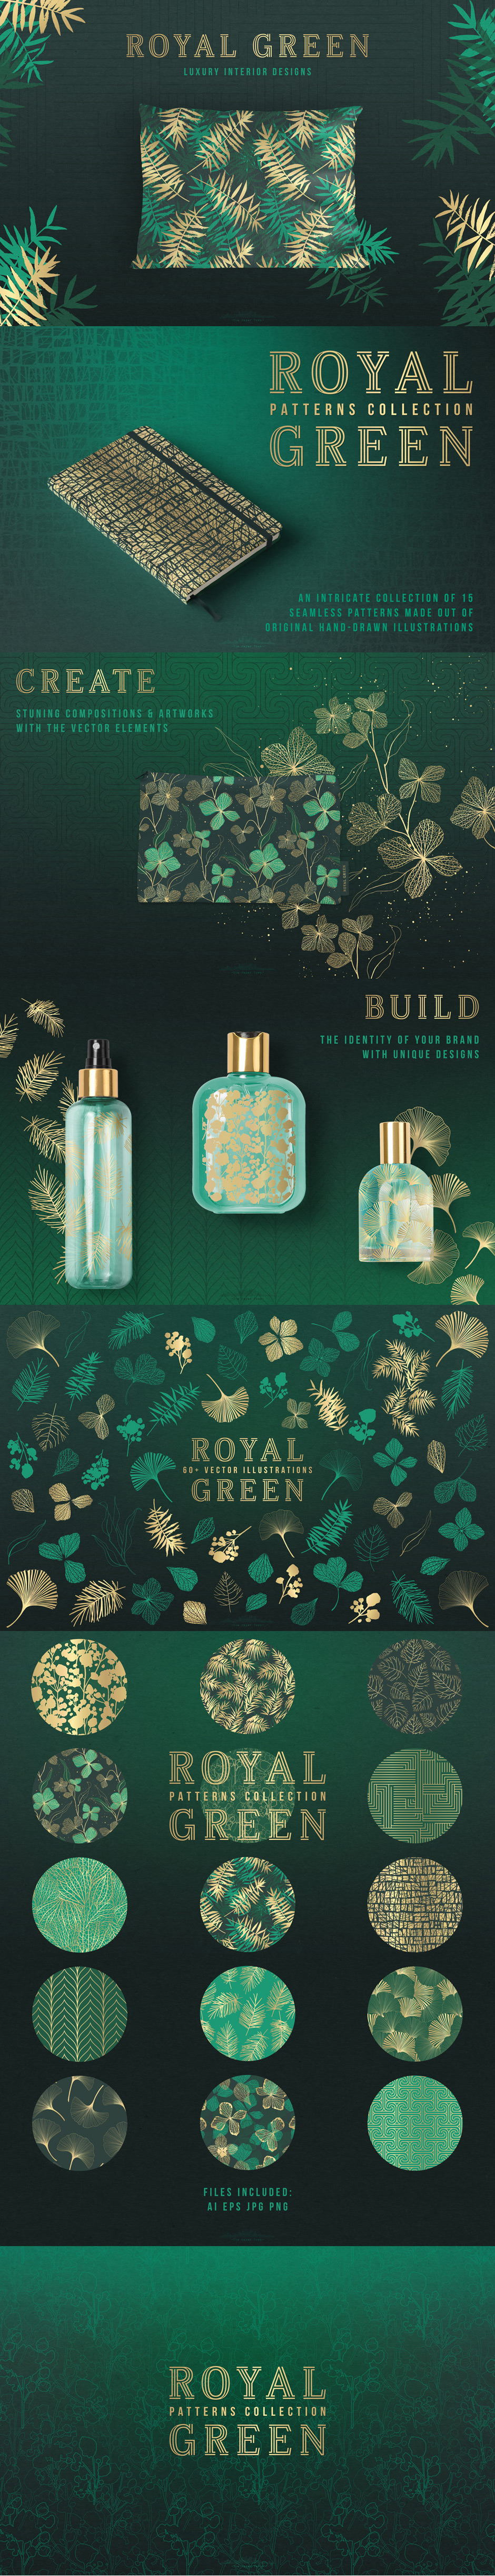 Royal Green Patterns Collection